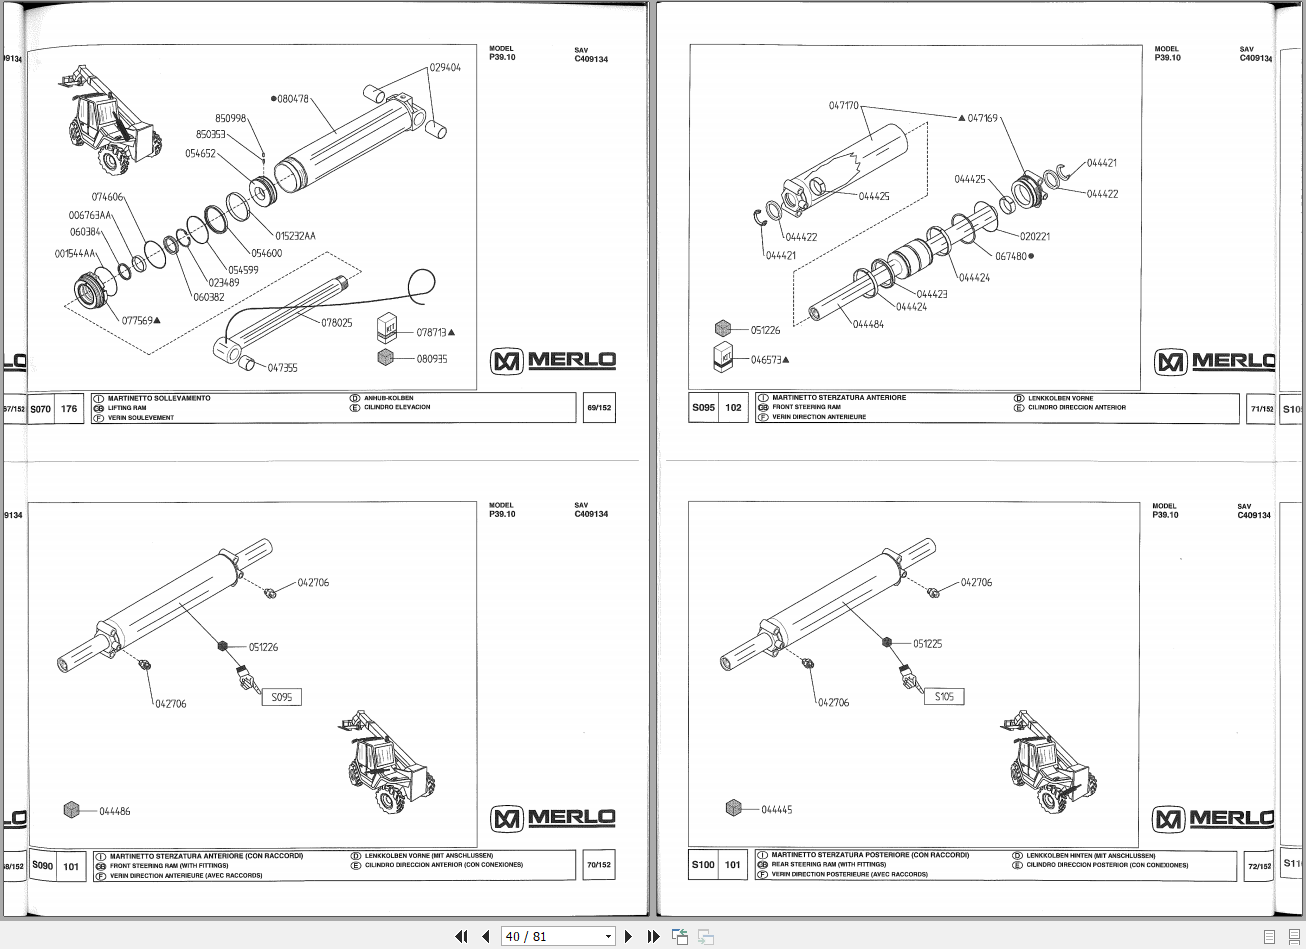 Merlo Telescopic Handler P39 P40 P60 Cdc Part Manual  U0026 Wiring Diagram